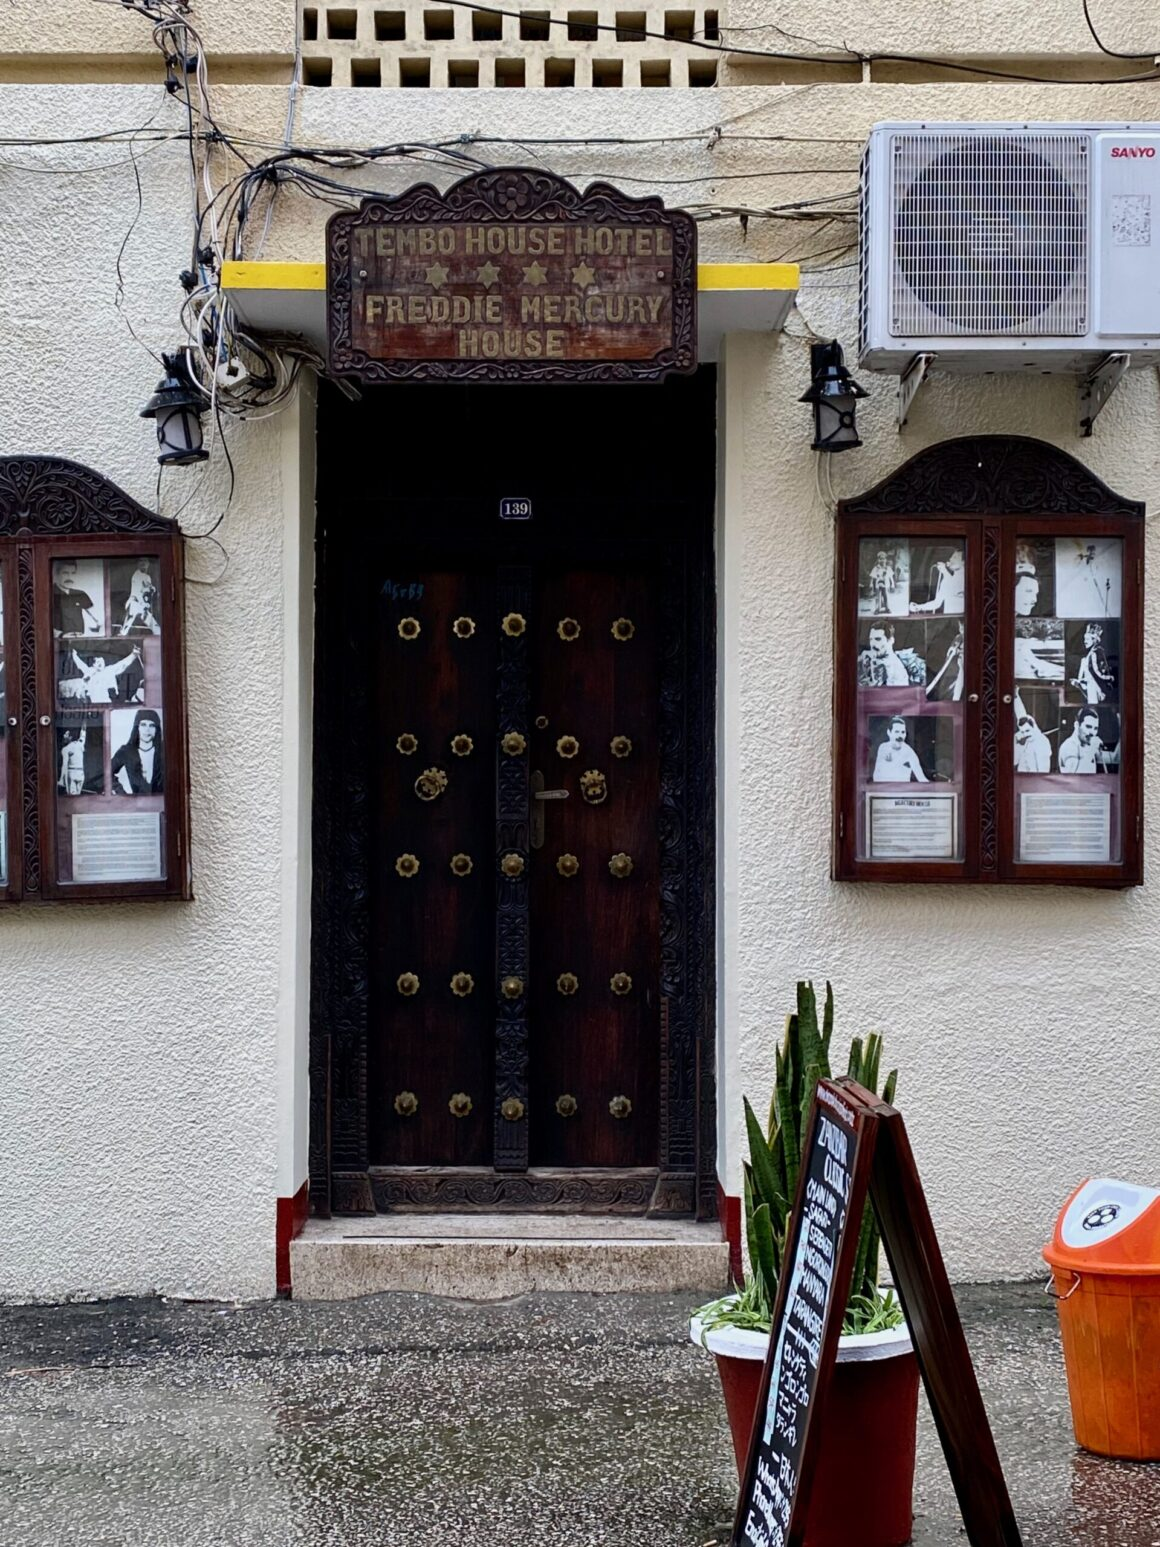 Freddy Mercury House located in Stone Town